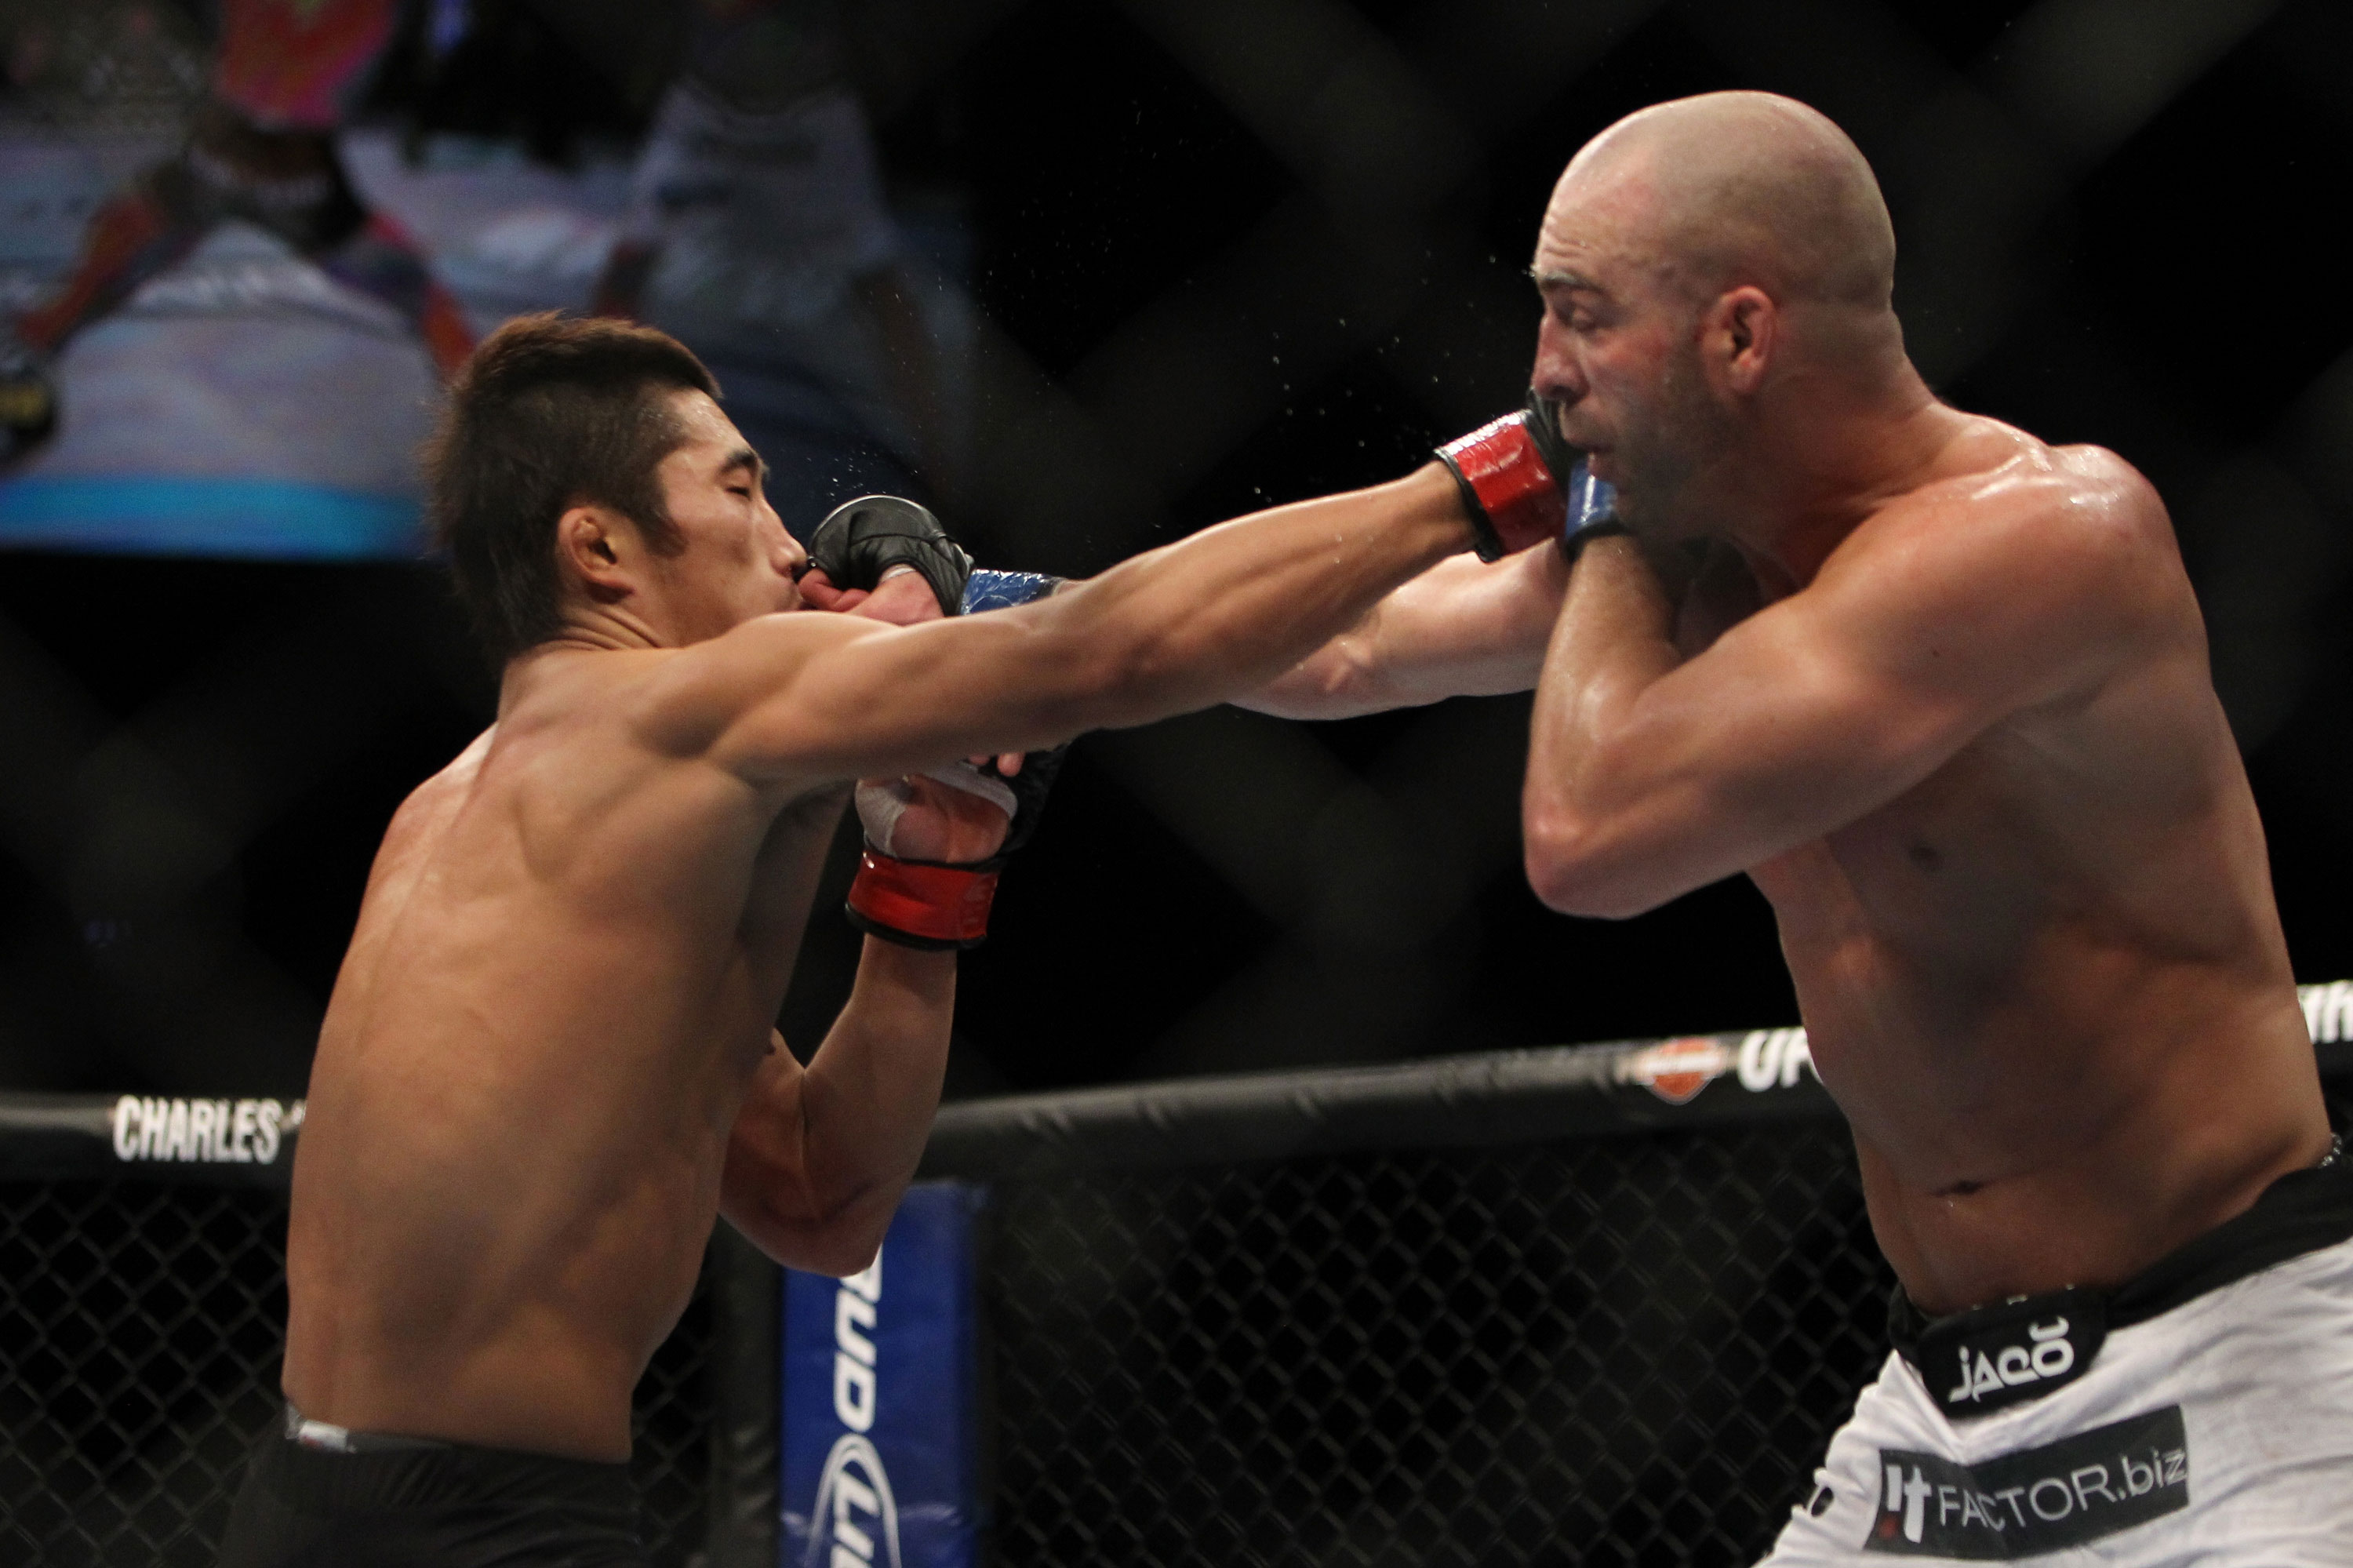 LAS VEGAS, NV - DECEMBER 30:  Dong Hyun Kim (left) and Sean Pierson (right) exchange punches during the UFC 141 event at the MGM Grand Garden Arena on December 30, 2011 in Las Vegas, Nevada.  (Photo by Josh Hedges/Zuffa LLC/Zuffa LLC via Getty Images) *** Local Caption *** Dong Hyun Kim; Sean Pierson